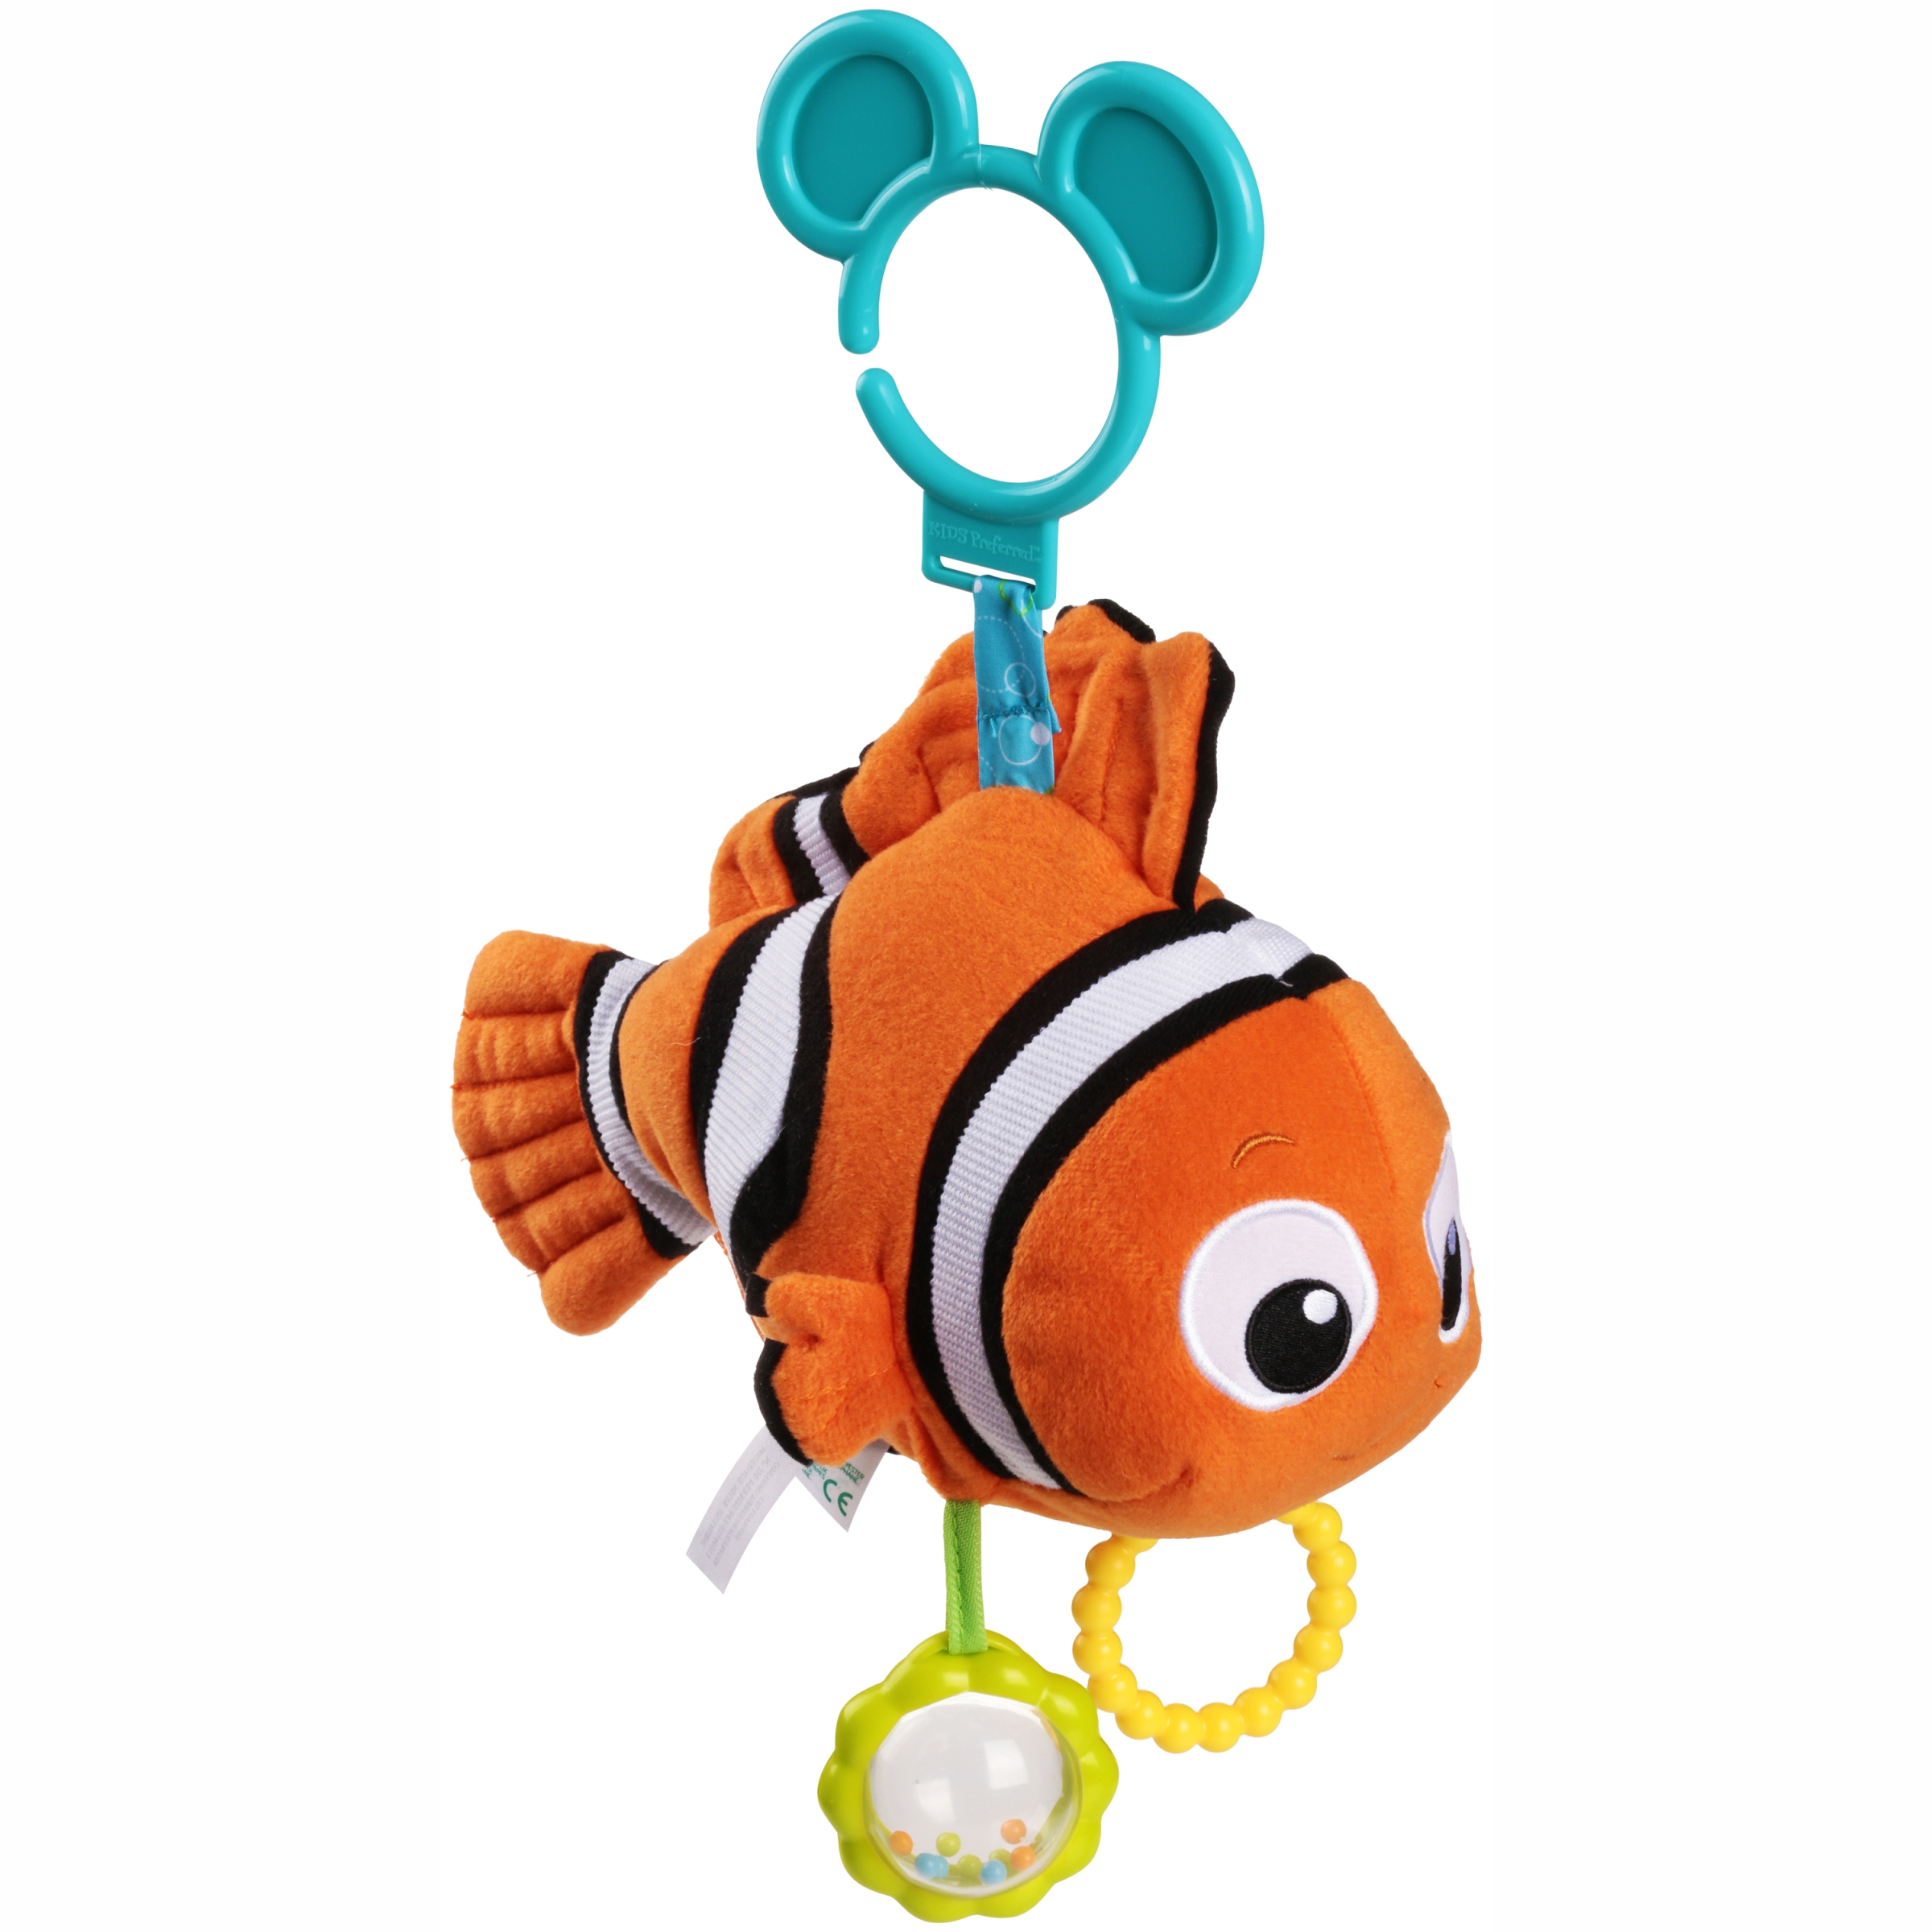 Disney Baby Finding Nemo Activity Toy